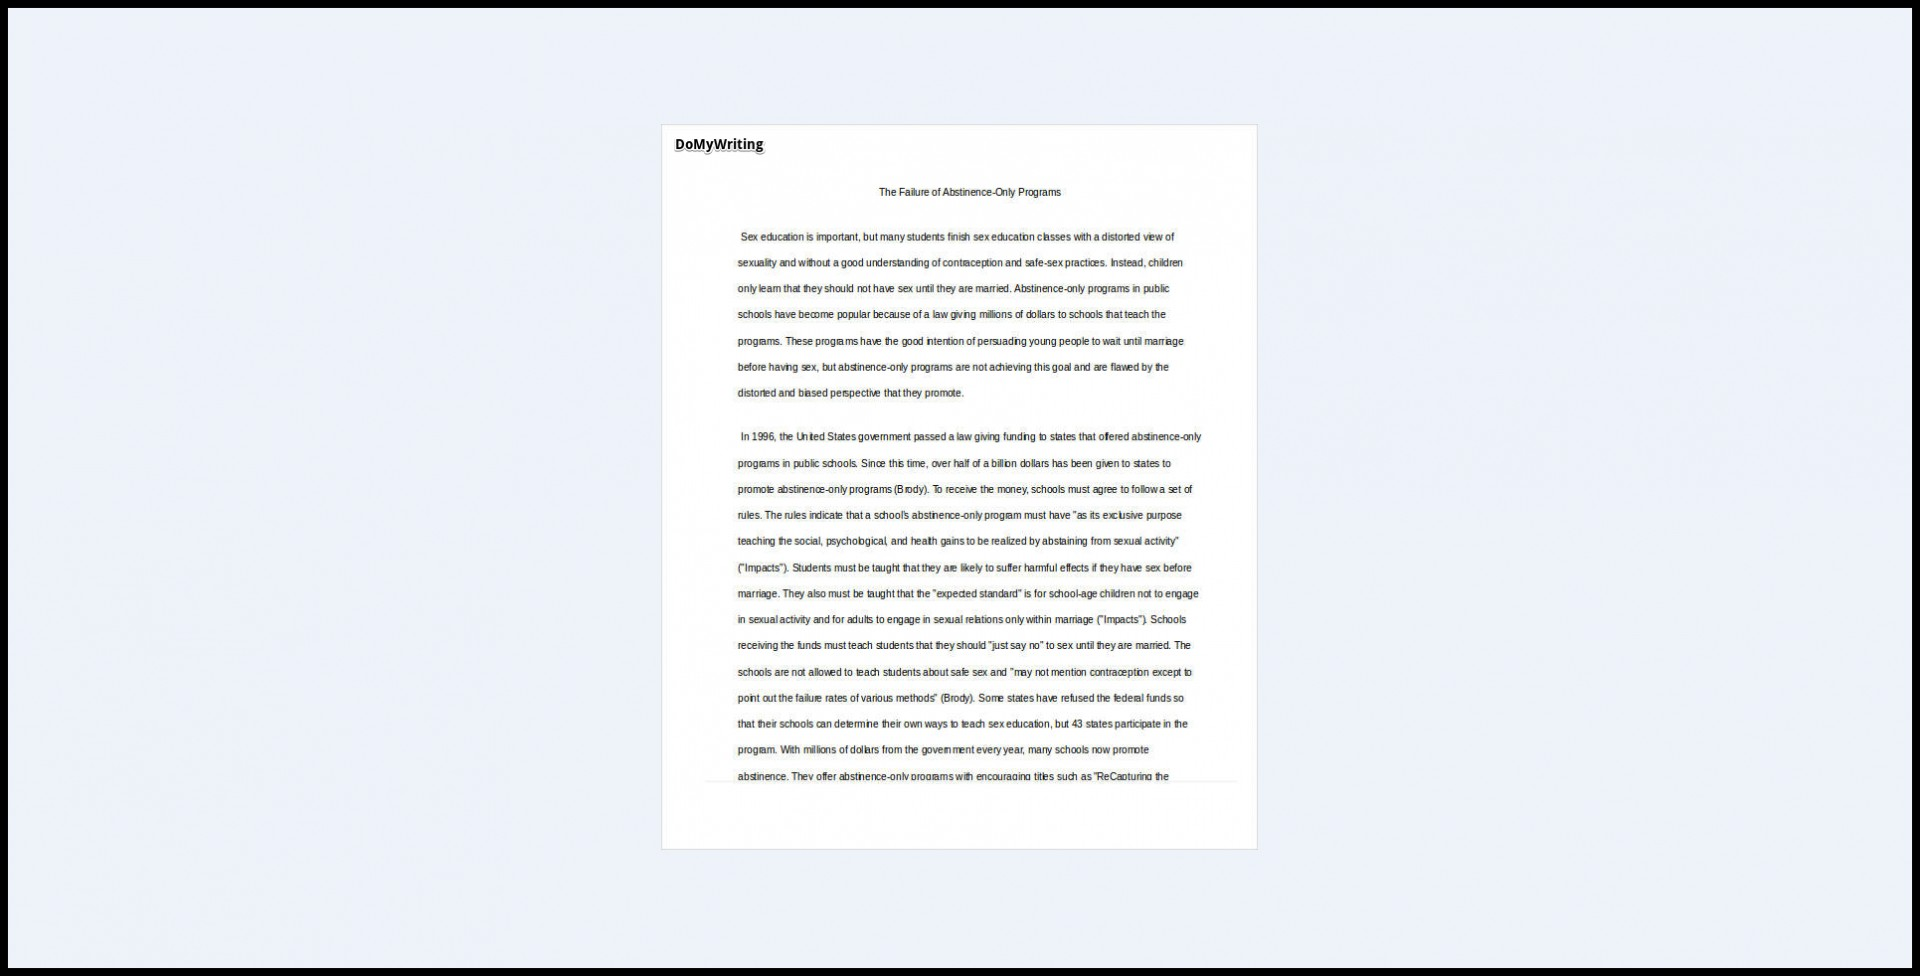 013 Persuasive Essay Definition Research Paper Topics About Awful Music Writing 1920